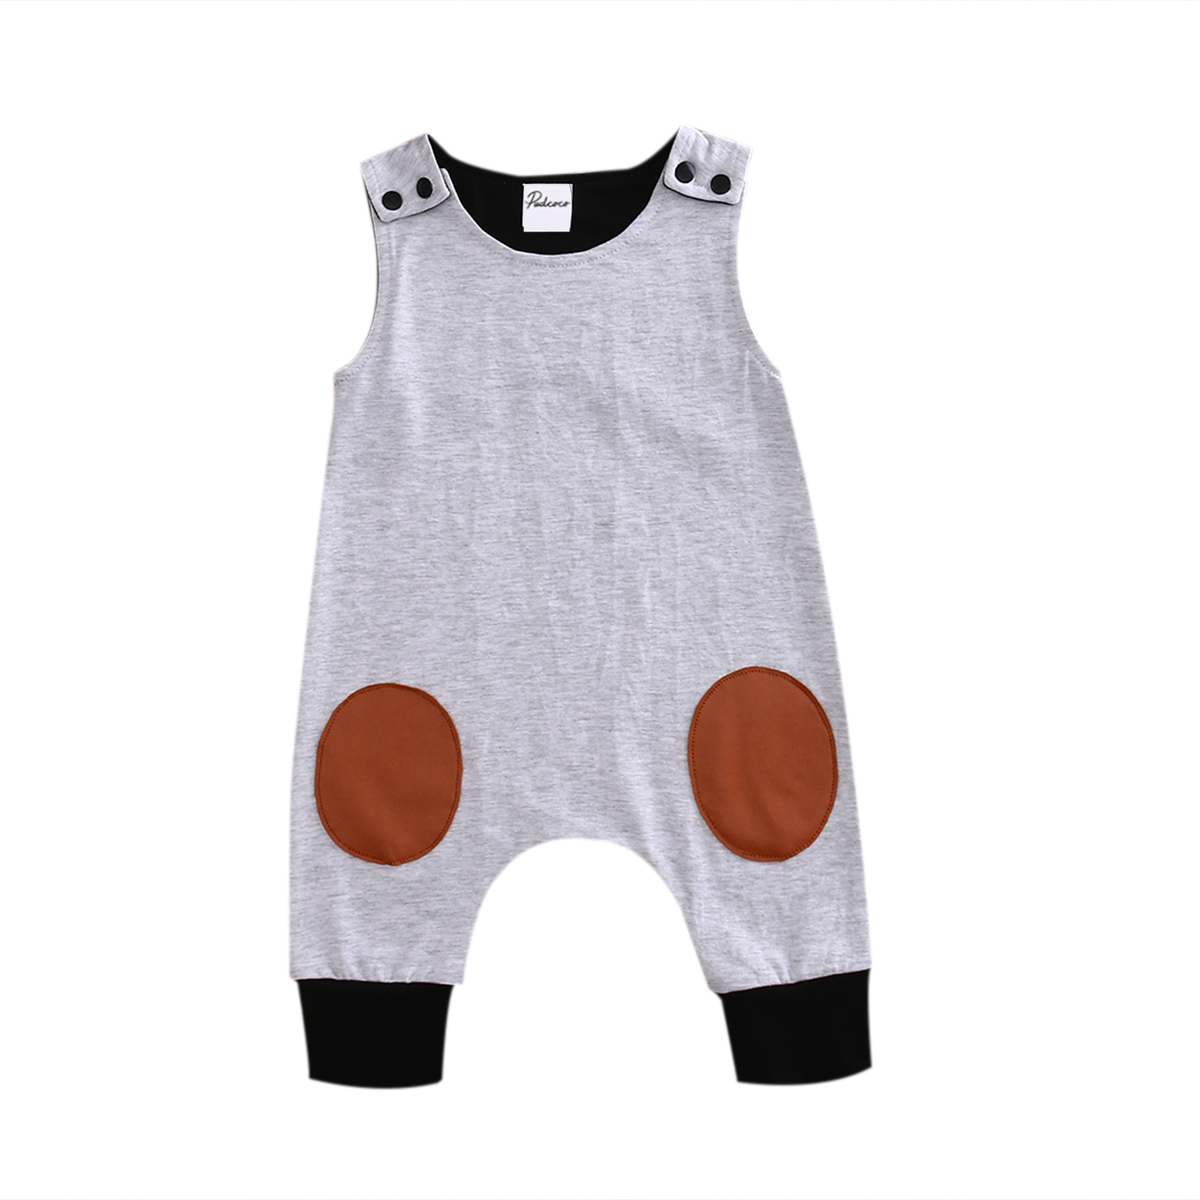 2017 Newborn Kids Baby Boy Girl Infant Sleeveless Cotton Romper Jumpsuit Summer Clothes Outfit newborn infant baby girl clothes strap lace floral romper jumpsuit outfit summer cotton backless one pieces outfit baby onesie